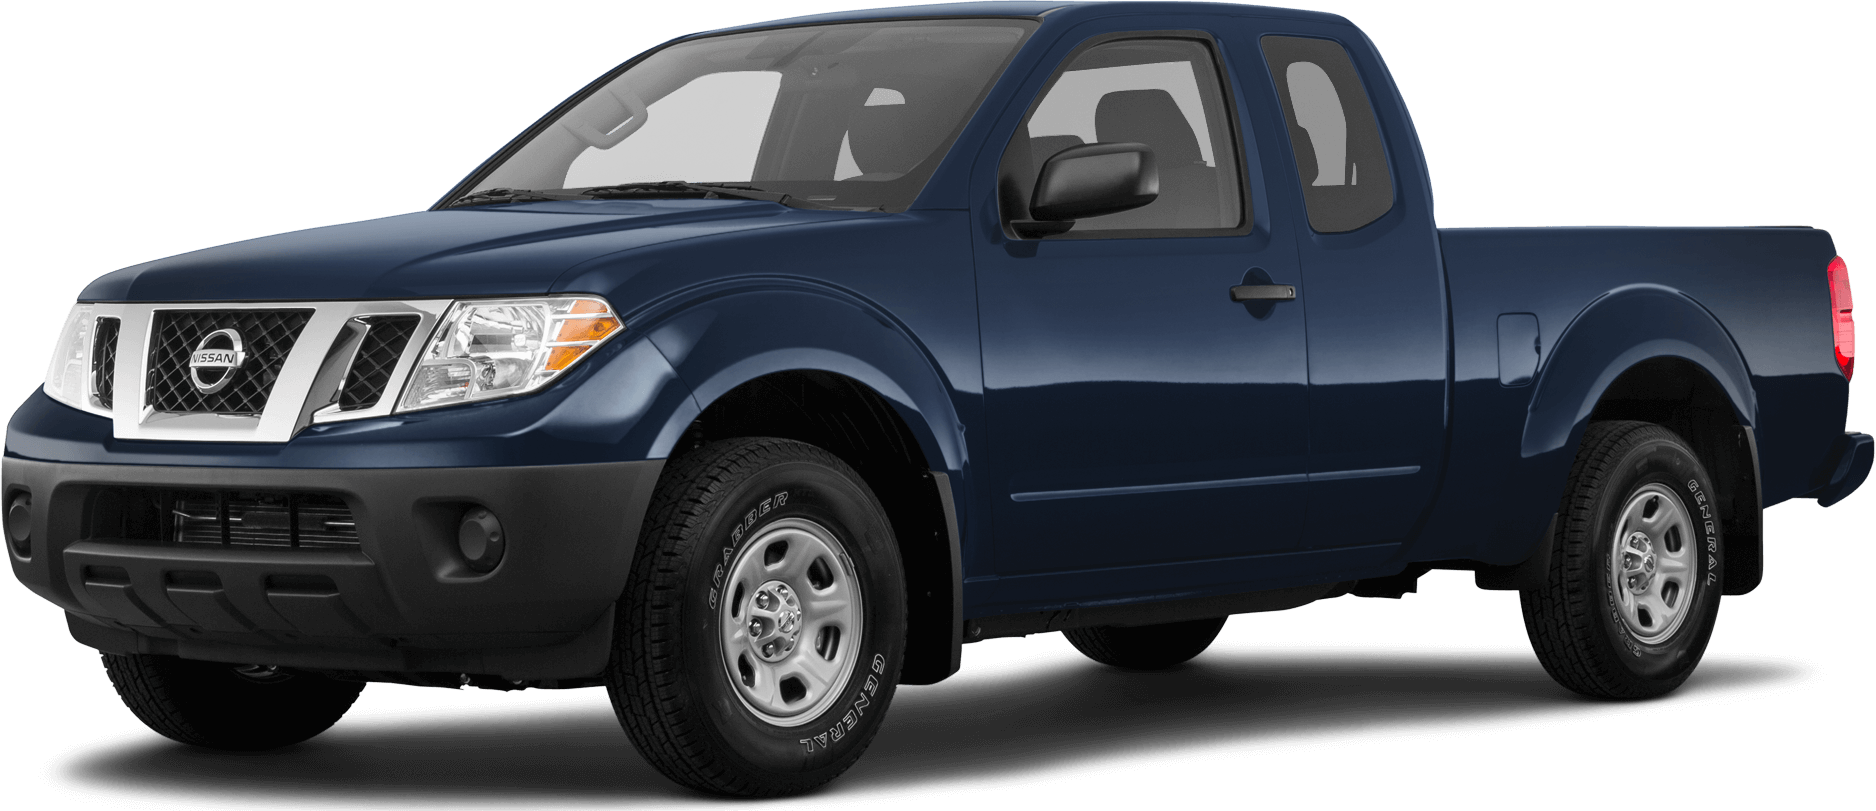 2018 Nissan Frontier 4×2 King Cab RWD